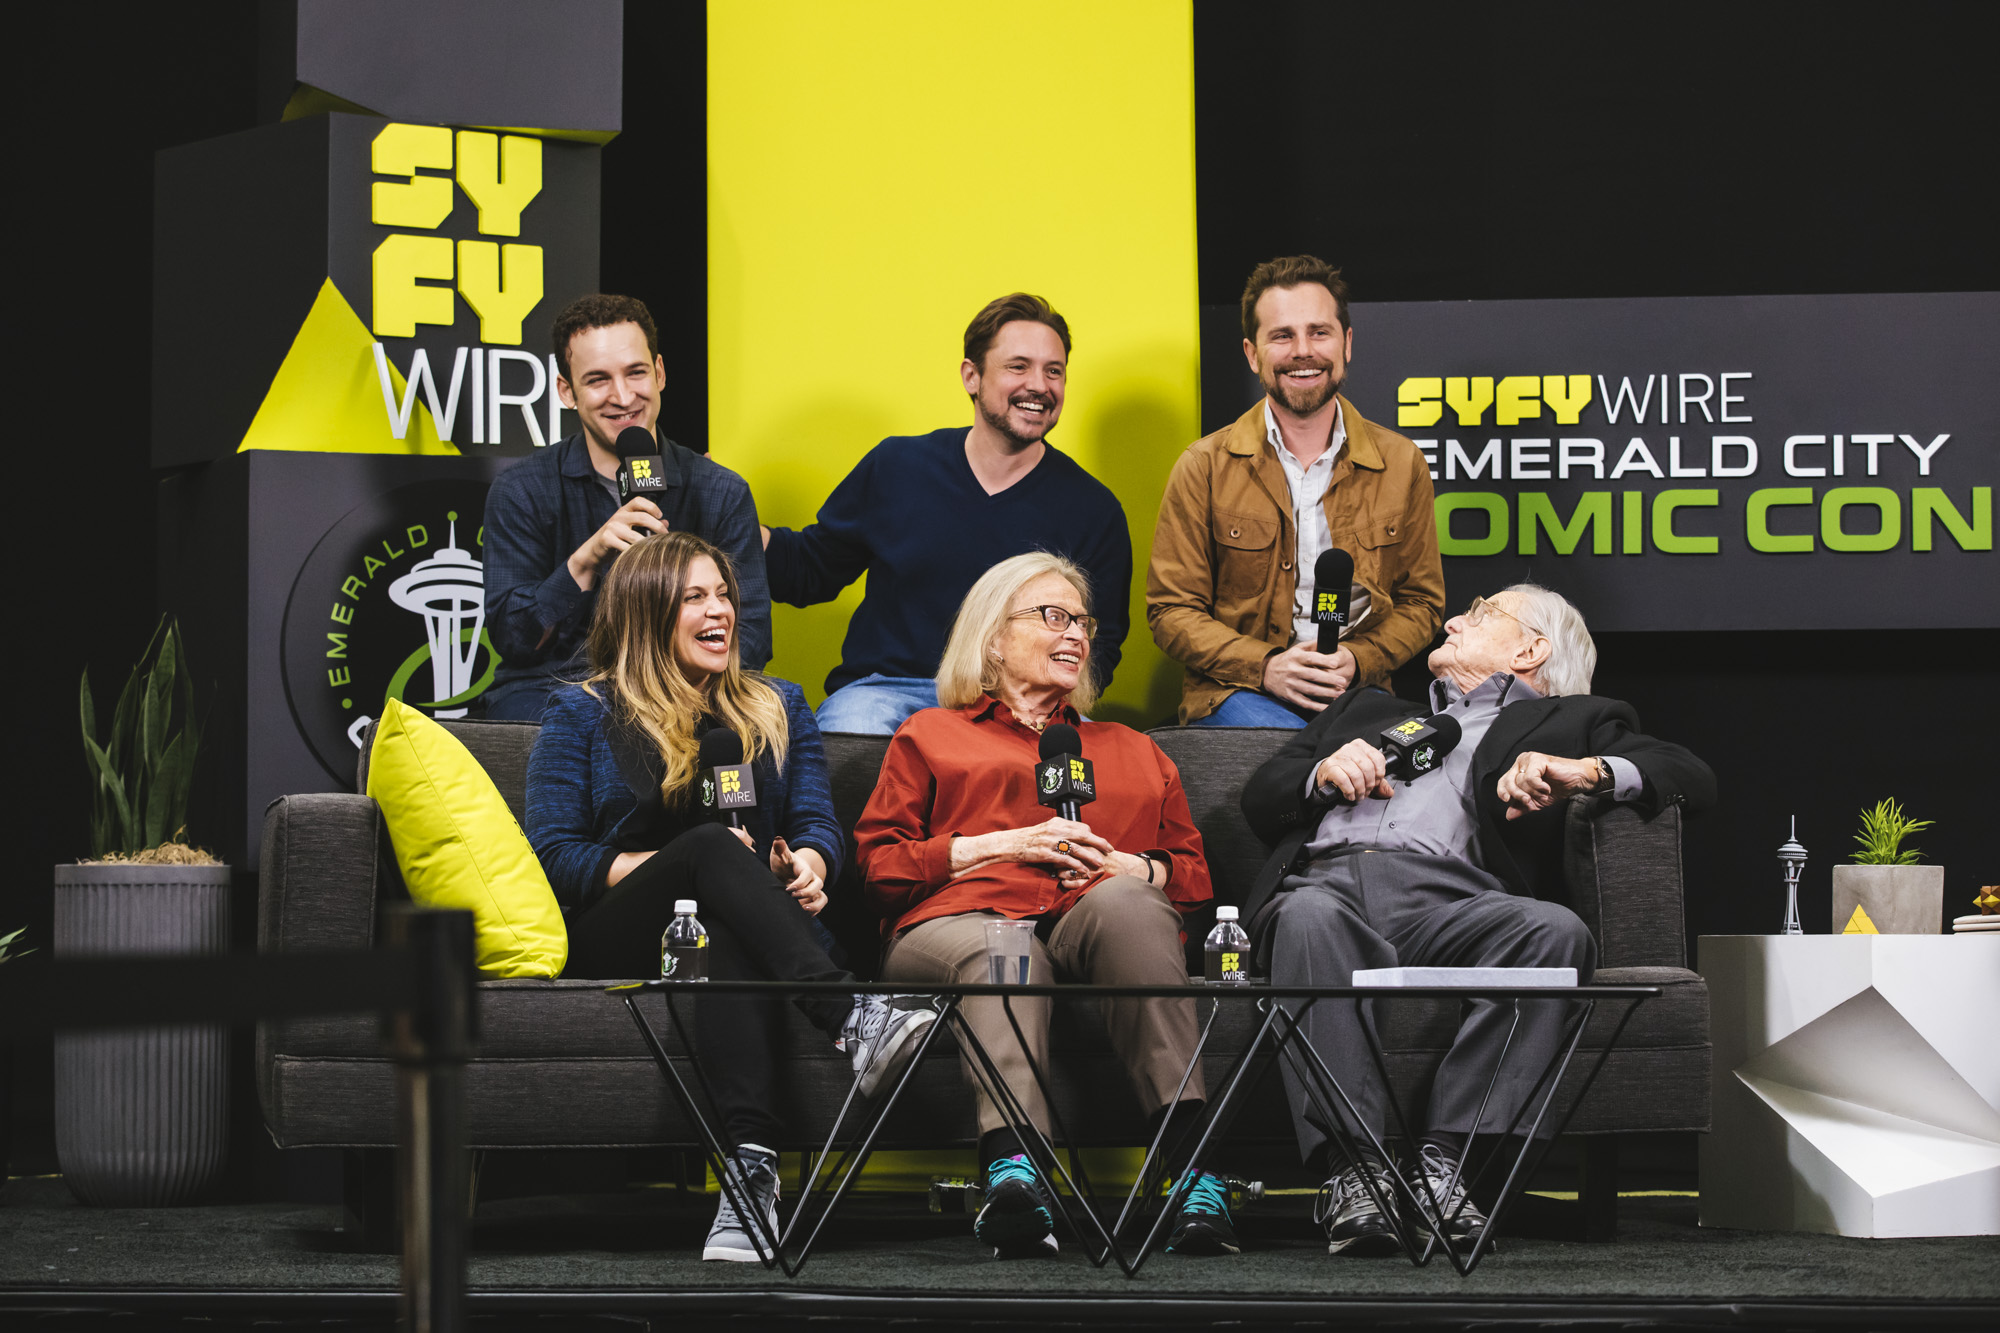 """Boy Meets World"" cast members, Gwendoline Christie from ""Game of Thrones"" and Seattle's own Rainn Wilson (""The Office"", ""Star Trek: Discovery"") were just some of the celebrities who attended Emerald City Comic Con. (Image: Sunita Martini / Seattle Refined)"